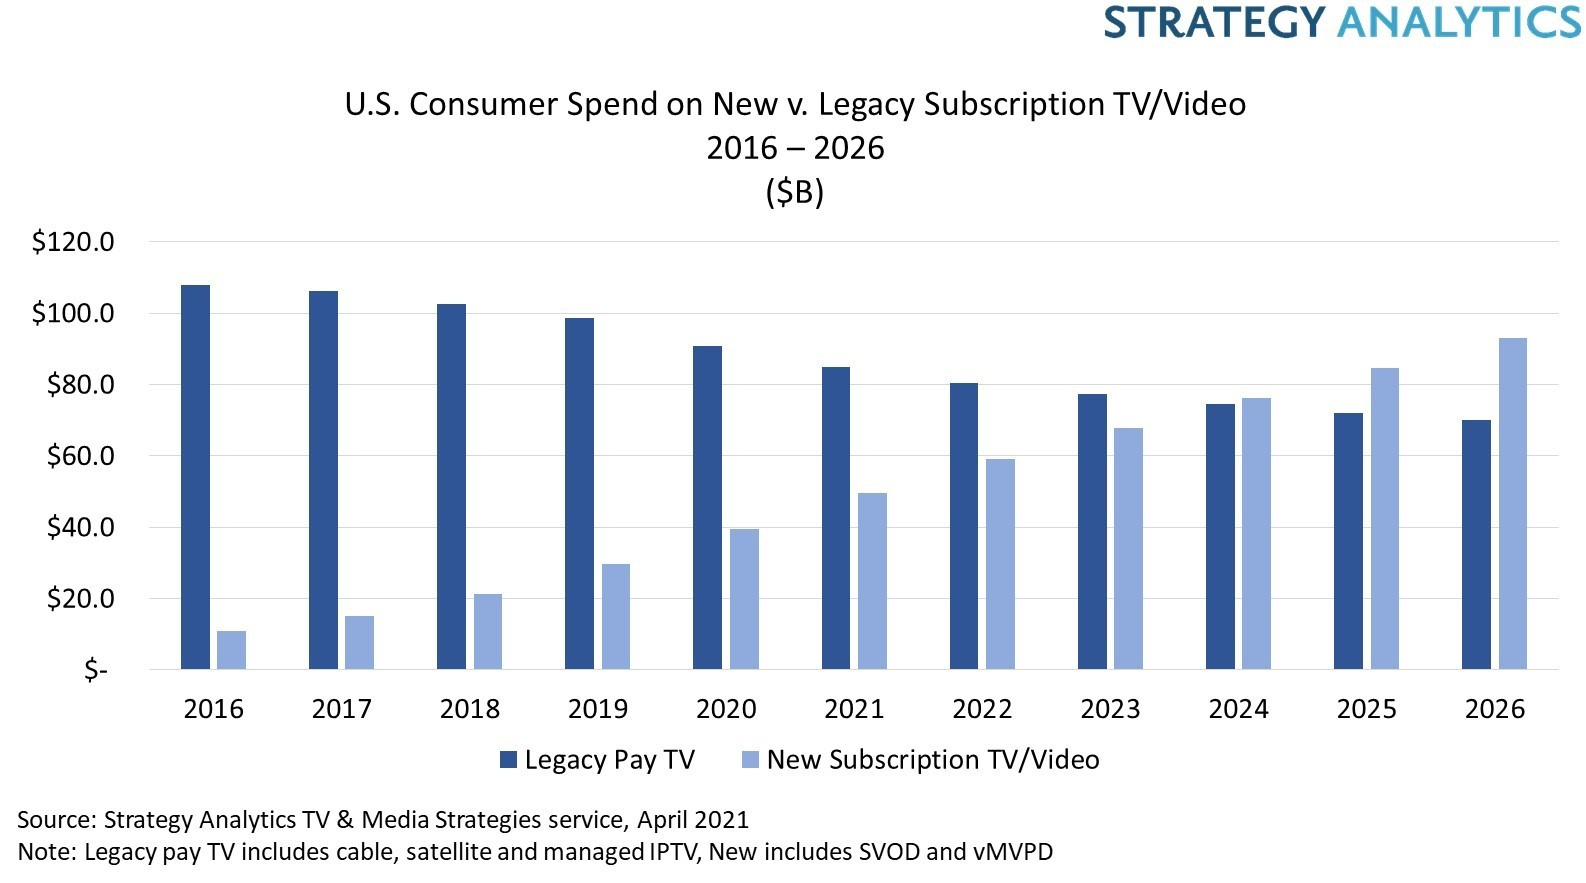 US Consumer Spend on New Subscription TV/Video (SVOD and vMVPD) versus Legacy Pay TV (cable, satellite, managed IPTV) [$Bn] - 2016-2026